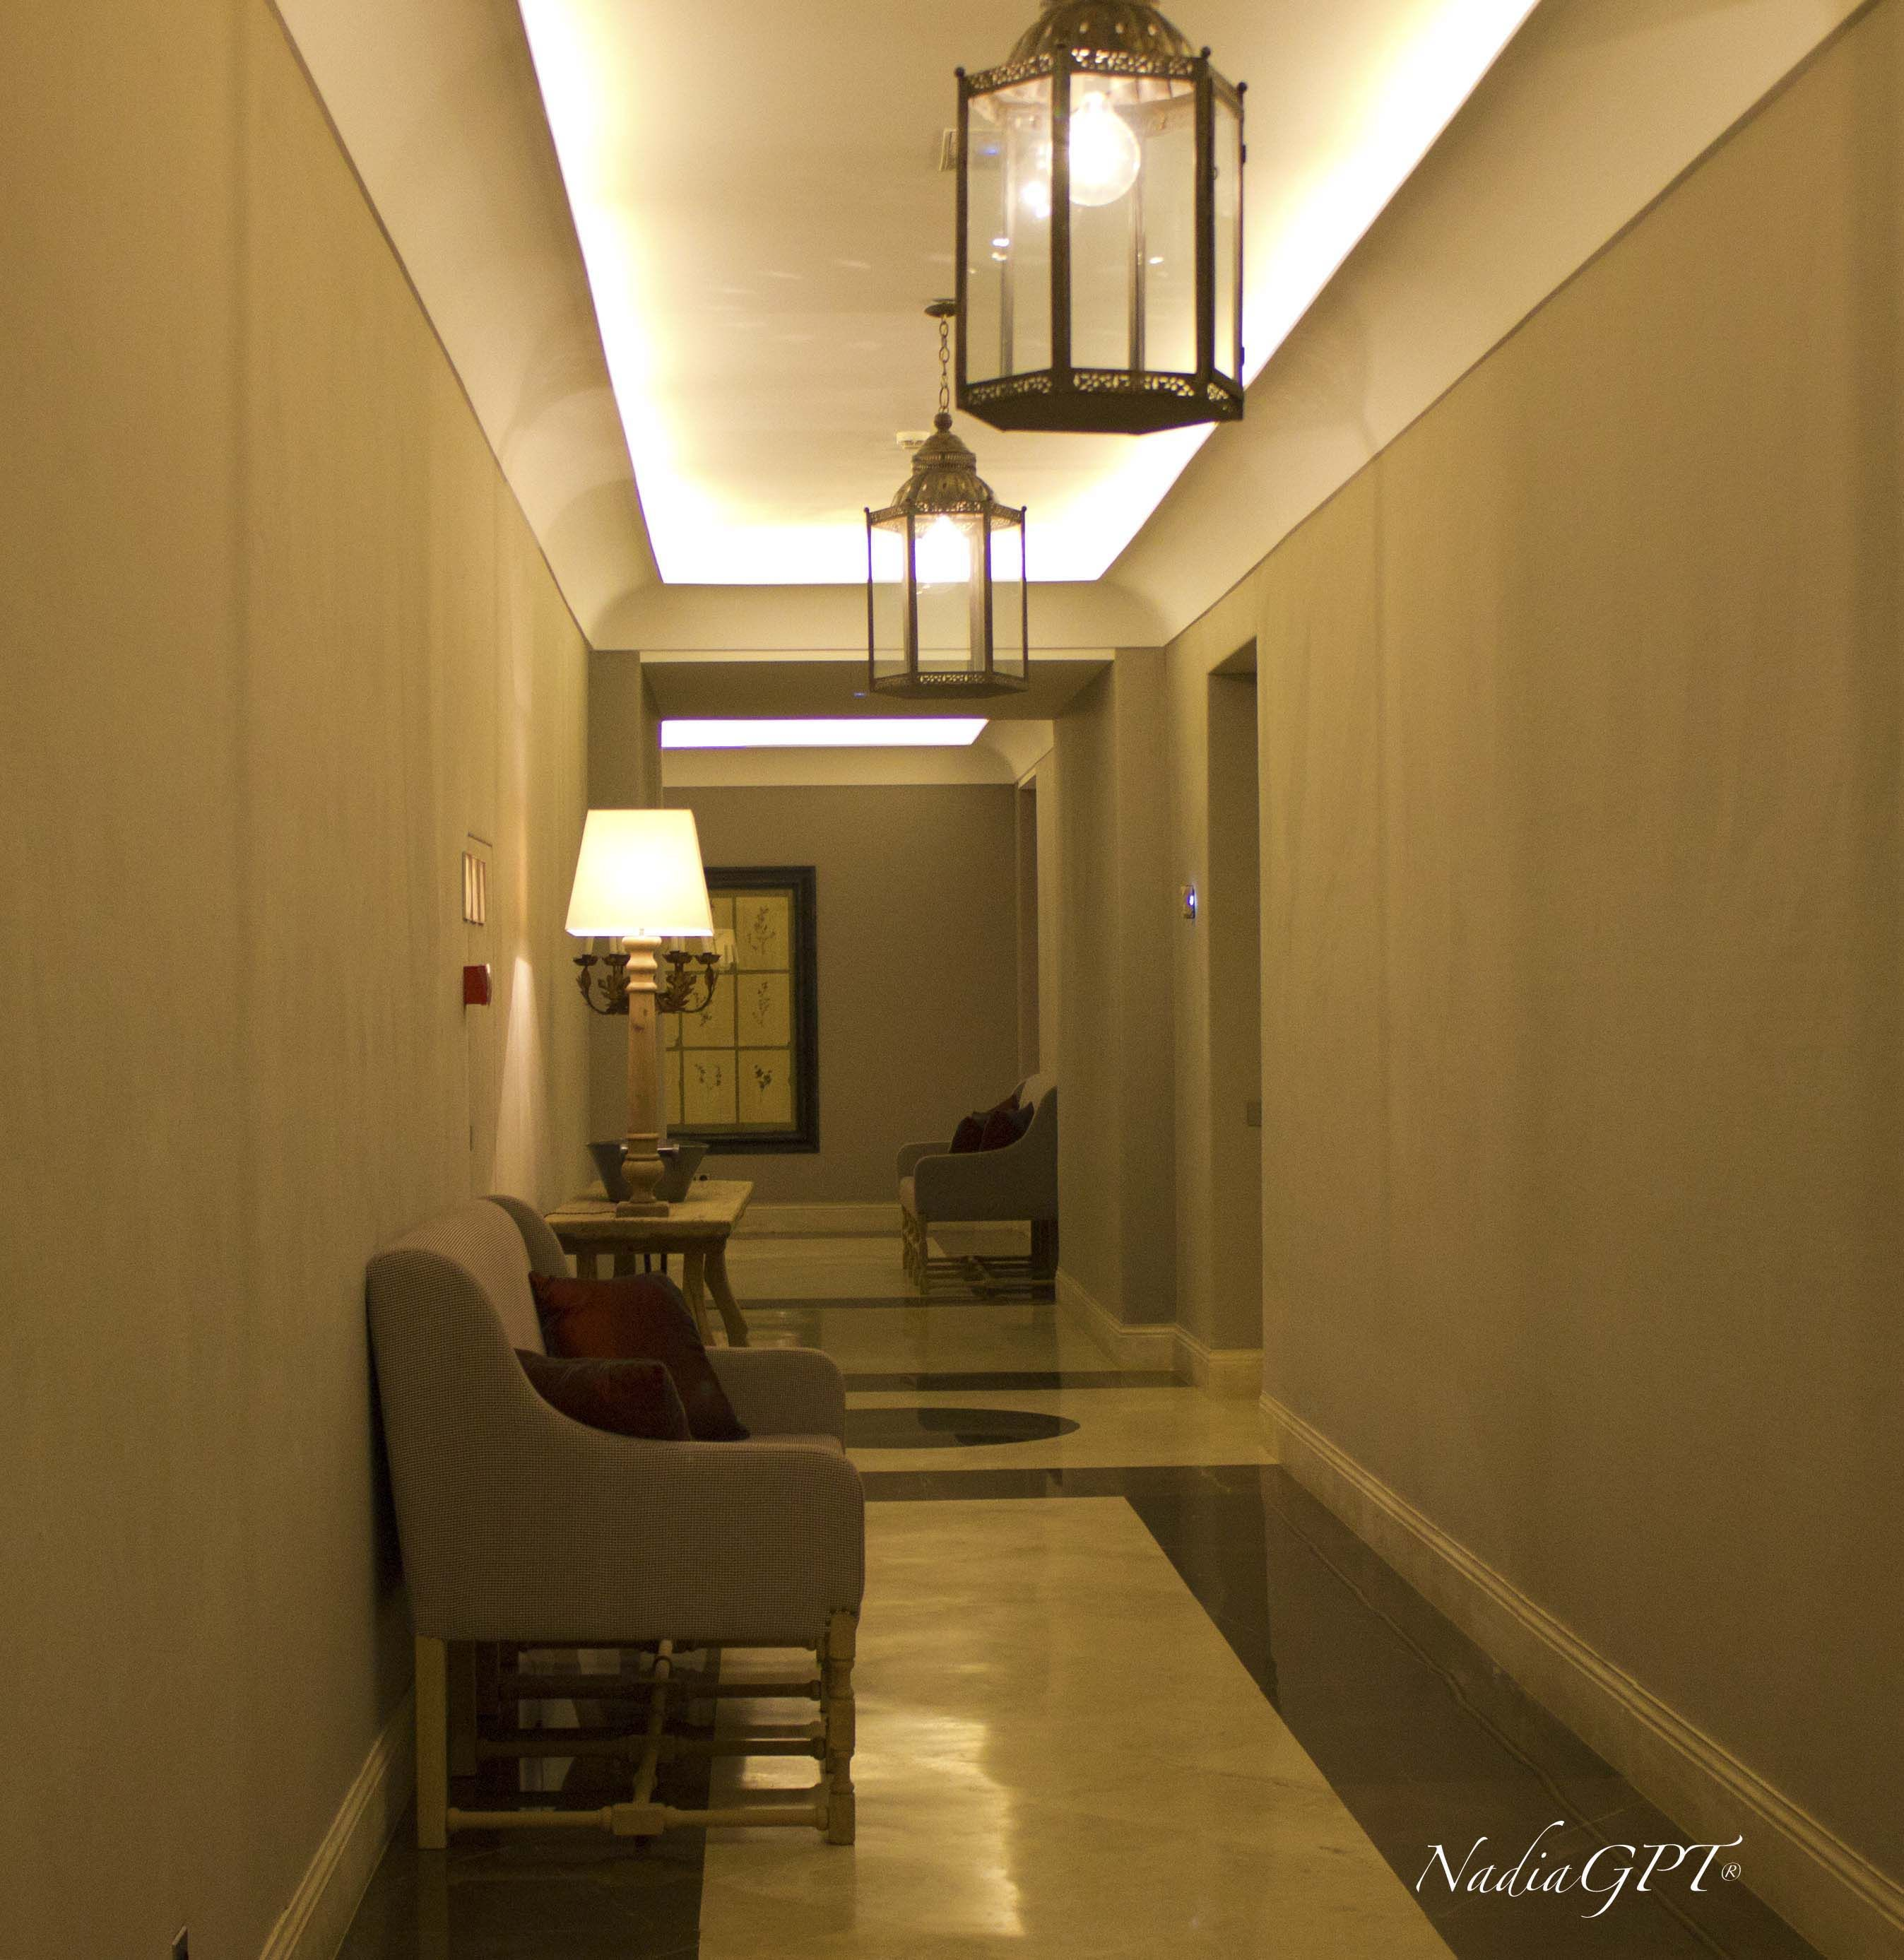 5 Star Hotel Hallway...Love The Colors!